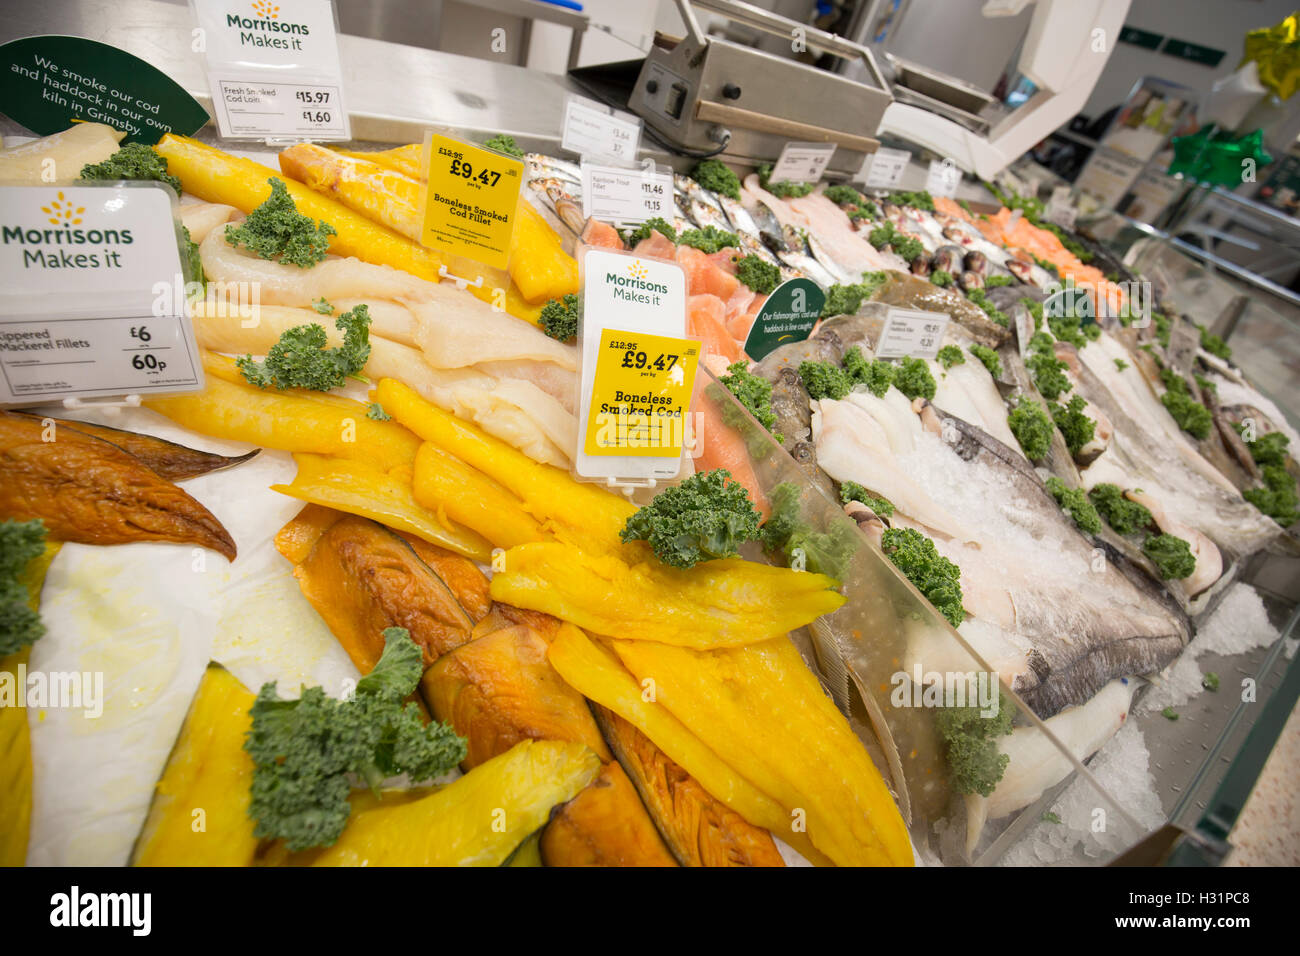 Fish counter in a Morrisons supermarket - Stock Image